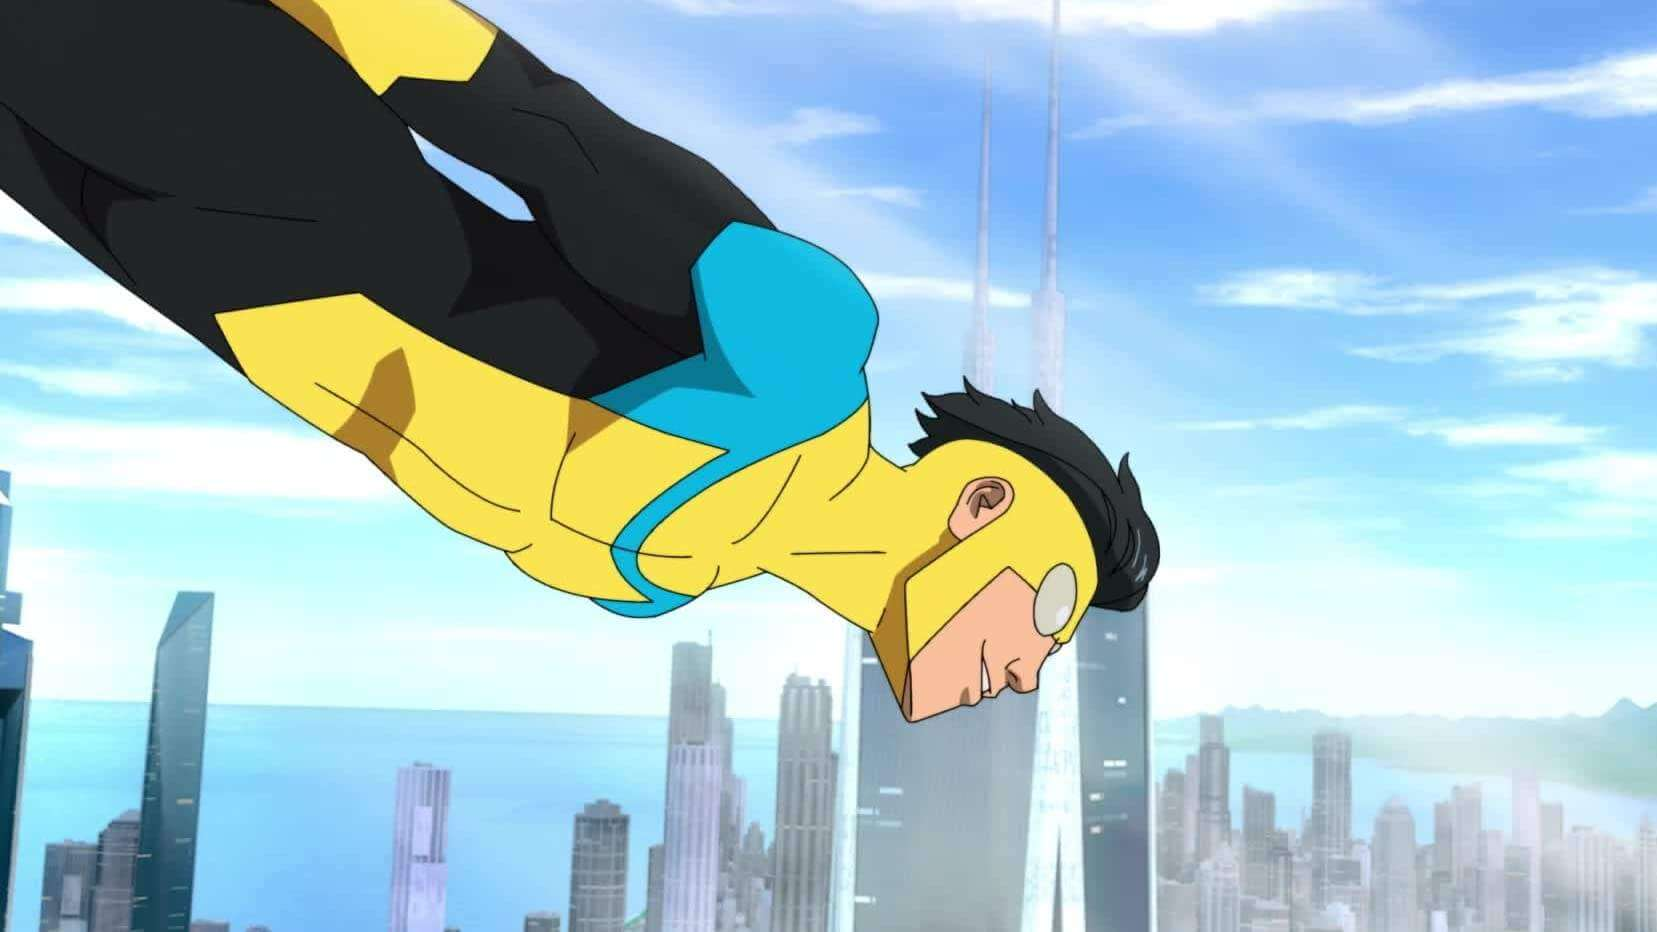 Invincible test out his powers and new suit.